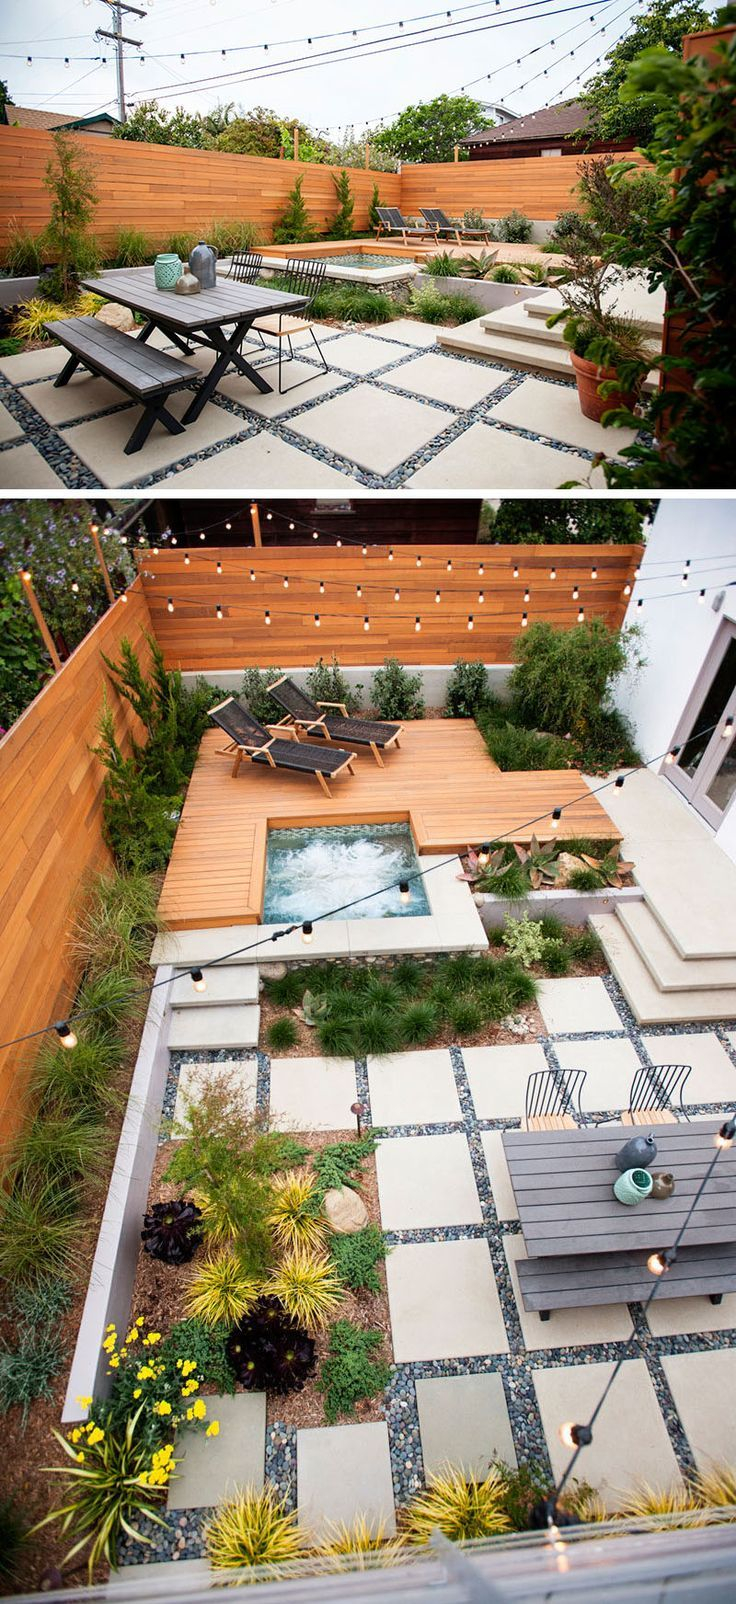 Landscaping Design Ideas 11 Backyards Designed For Entertaining throughout 15 Smart Initiatives of How to Improve Modern Backyard Ideas